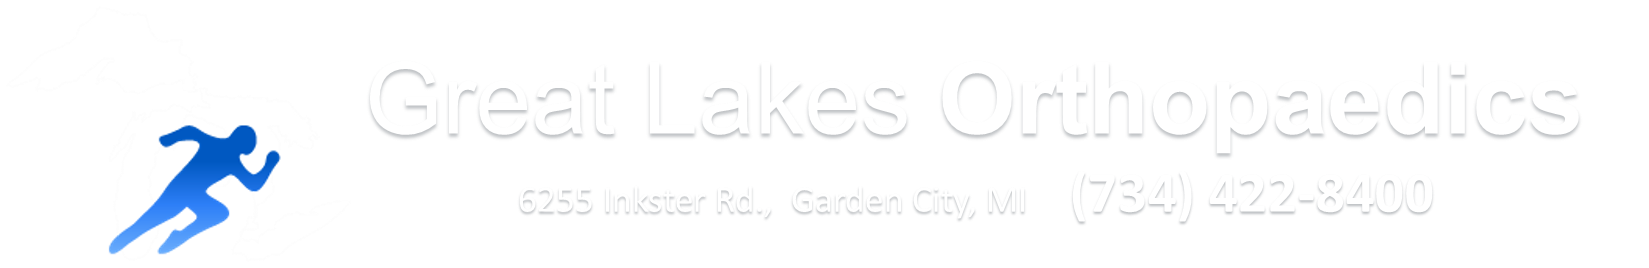 Great Lakes Orthopaedics